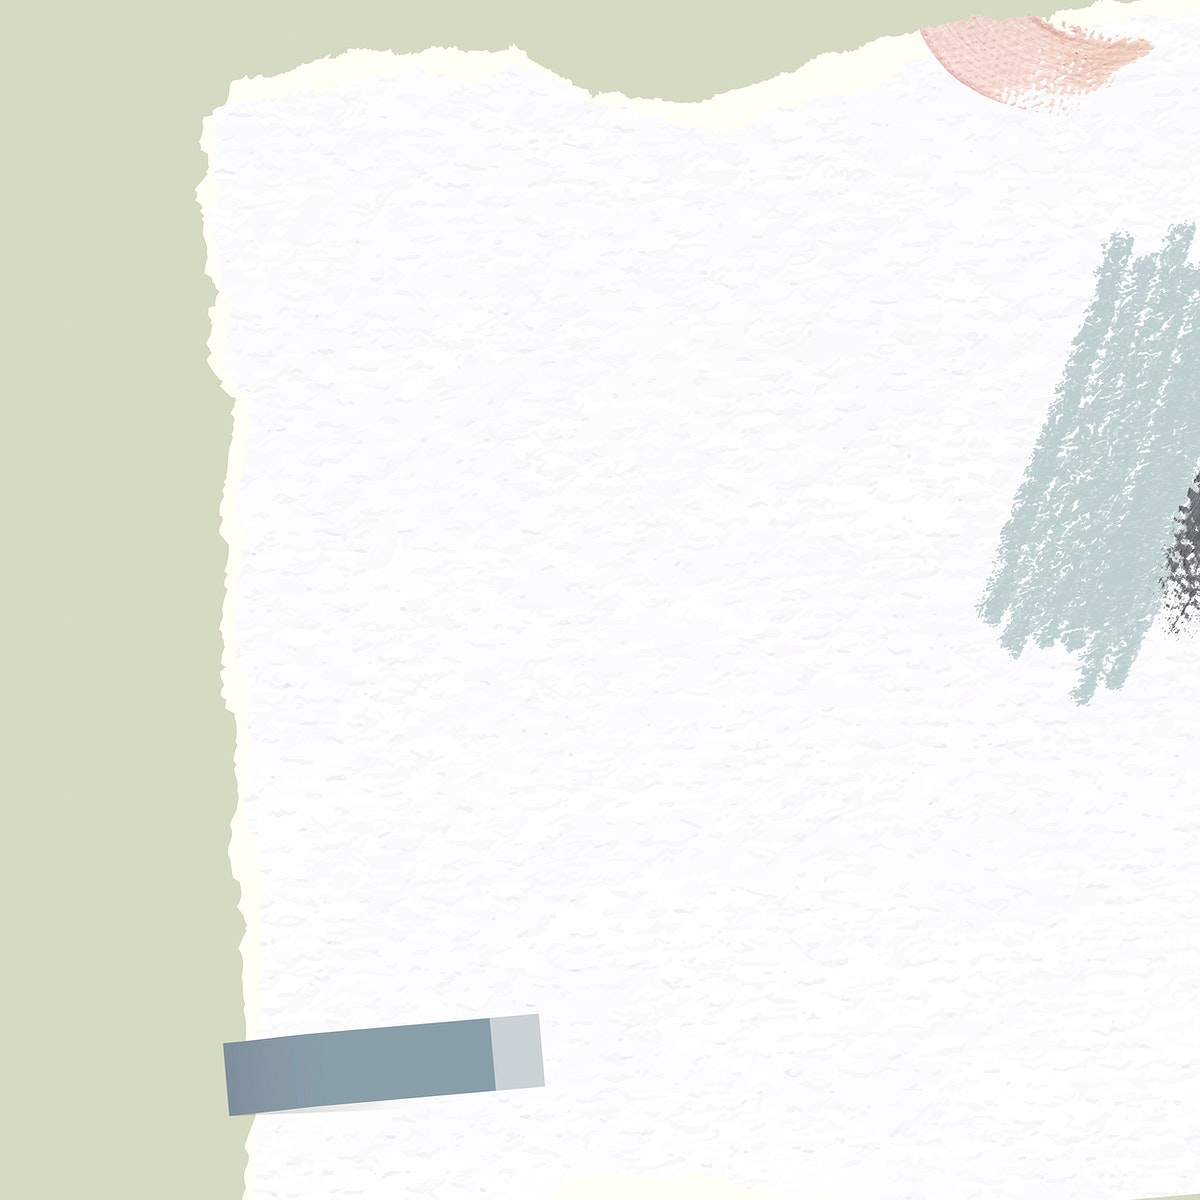 White ripped paper on green background vector